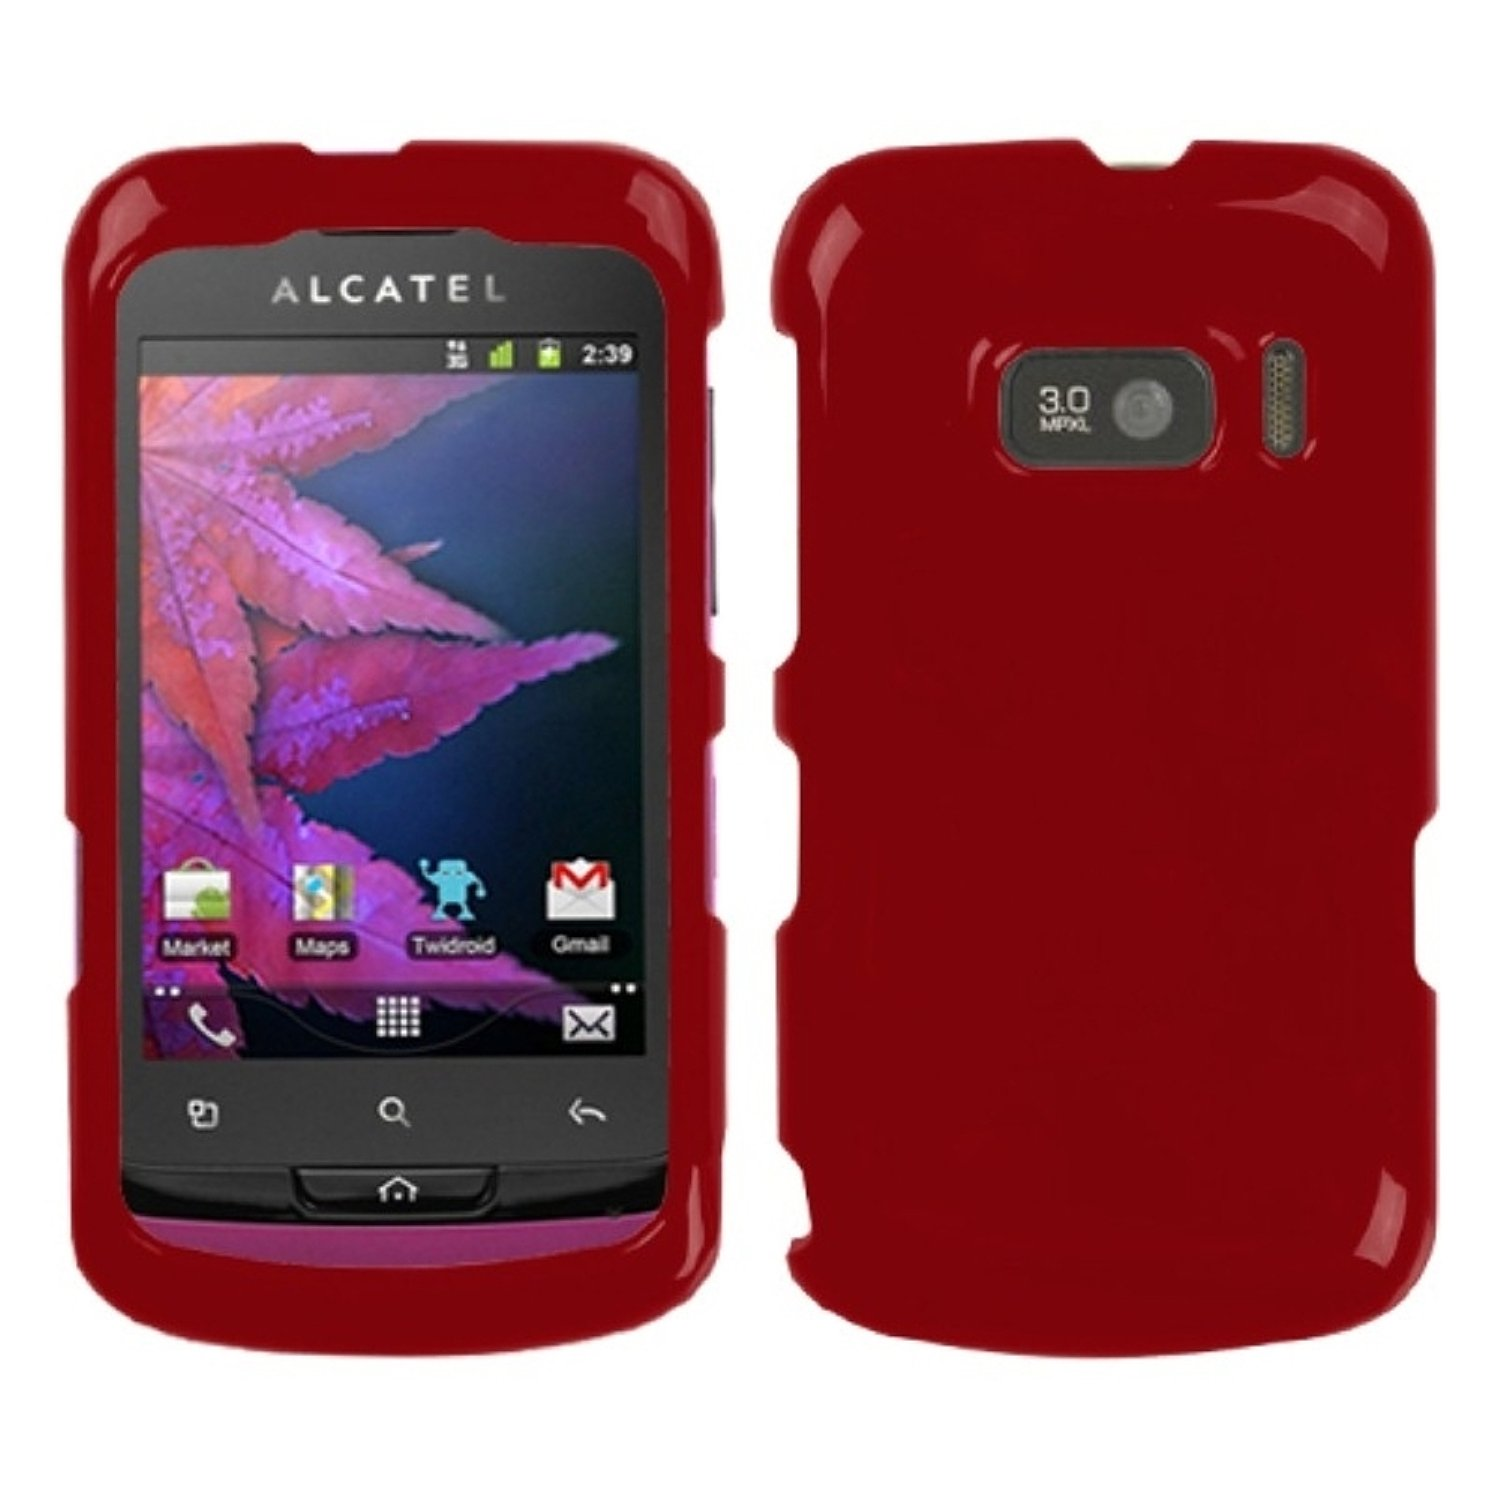 ALCATEL ONE TOUCH 918 WINDOWS 7 X64 DRIVER